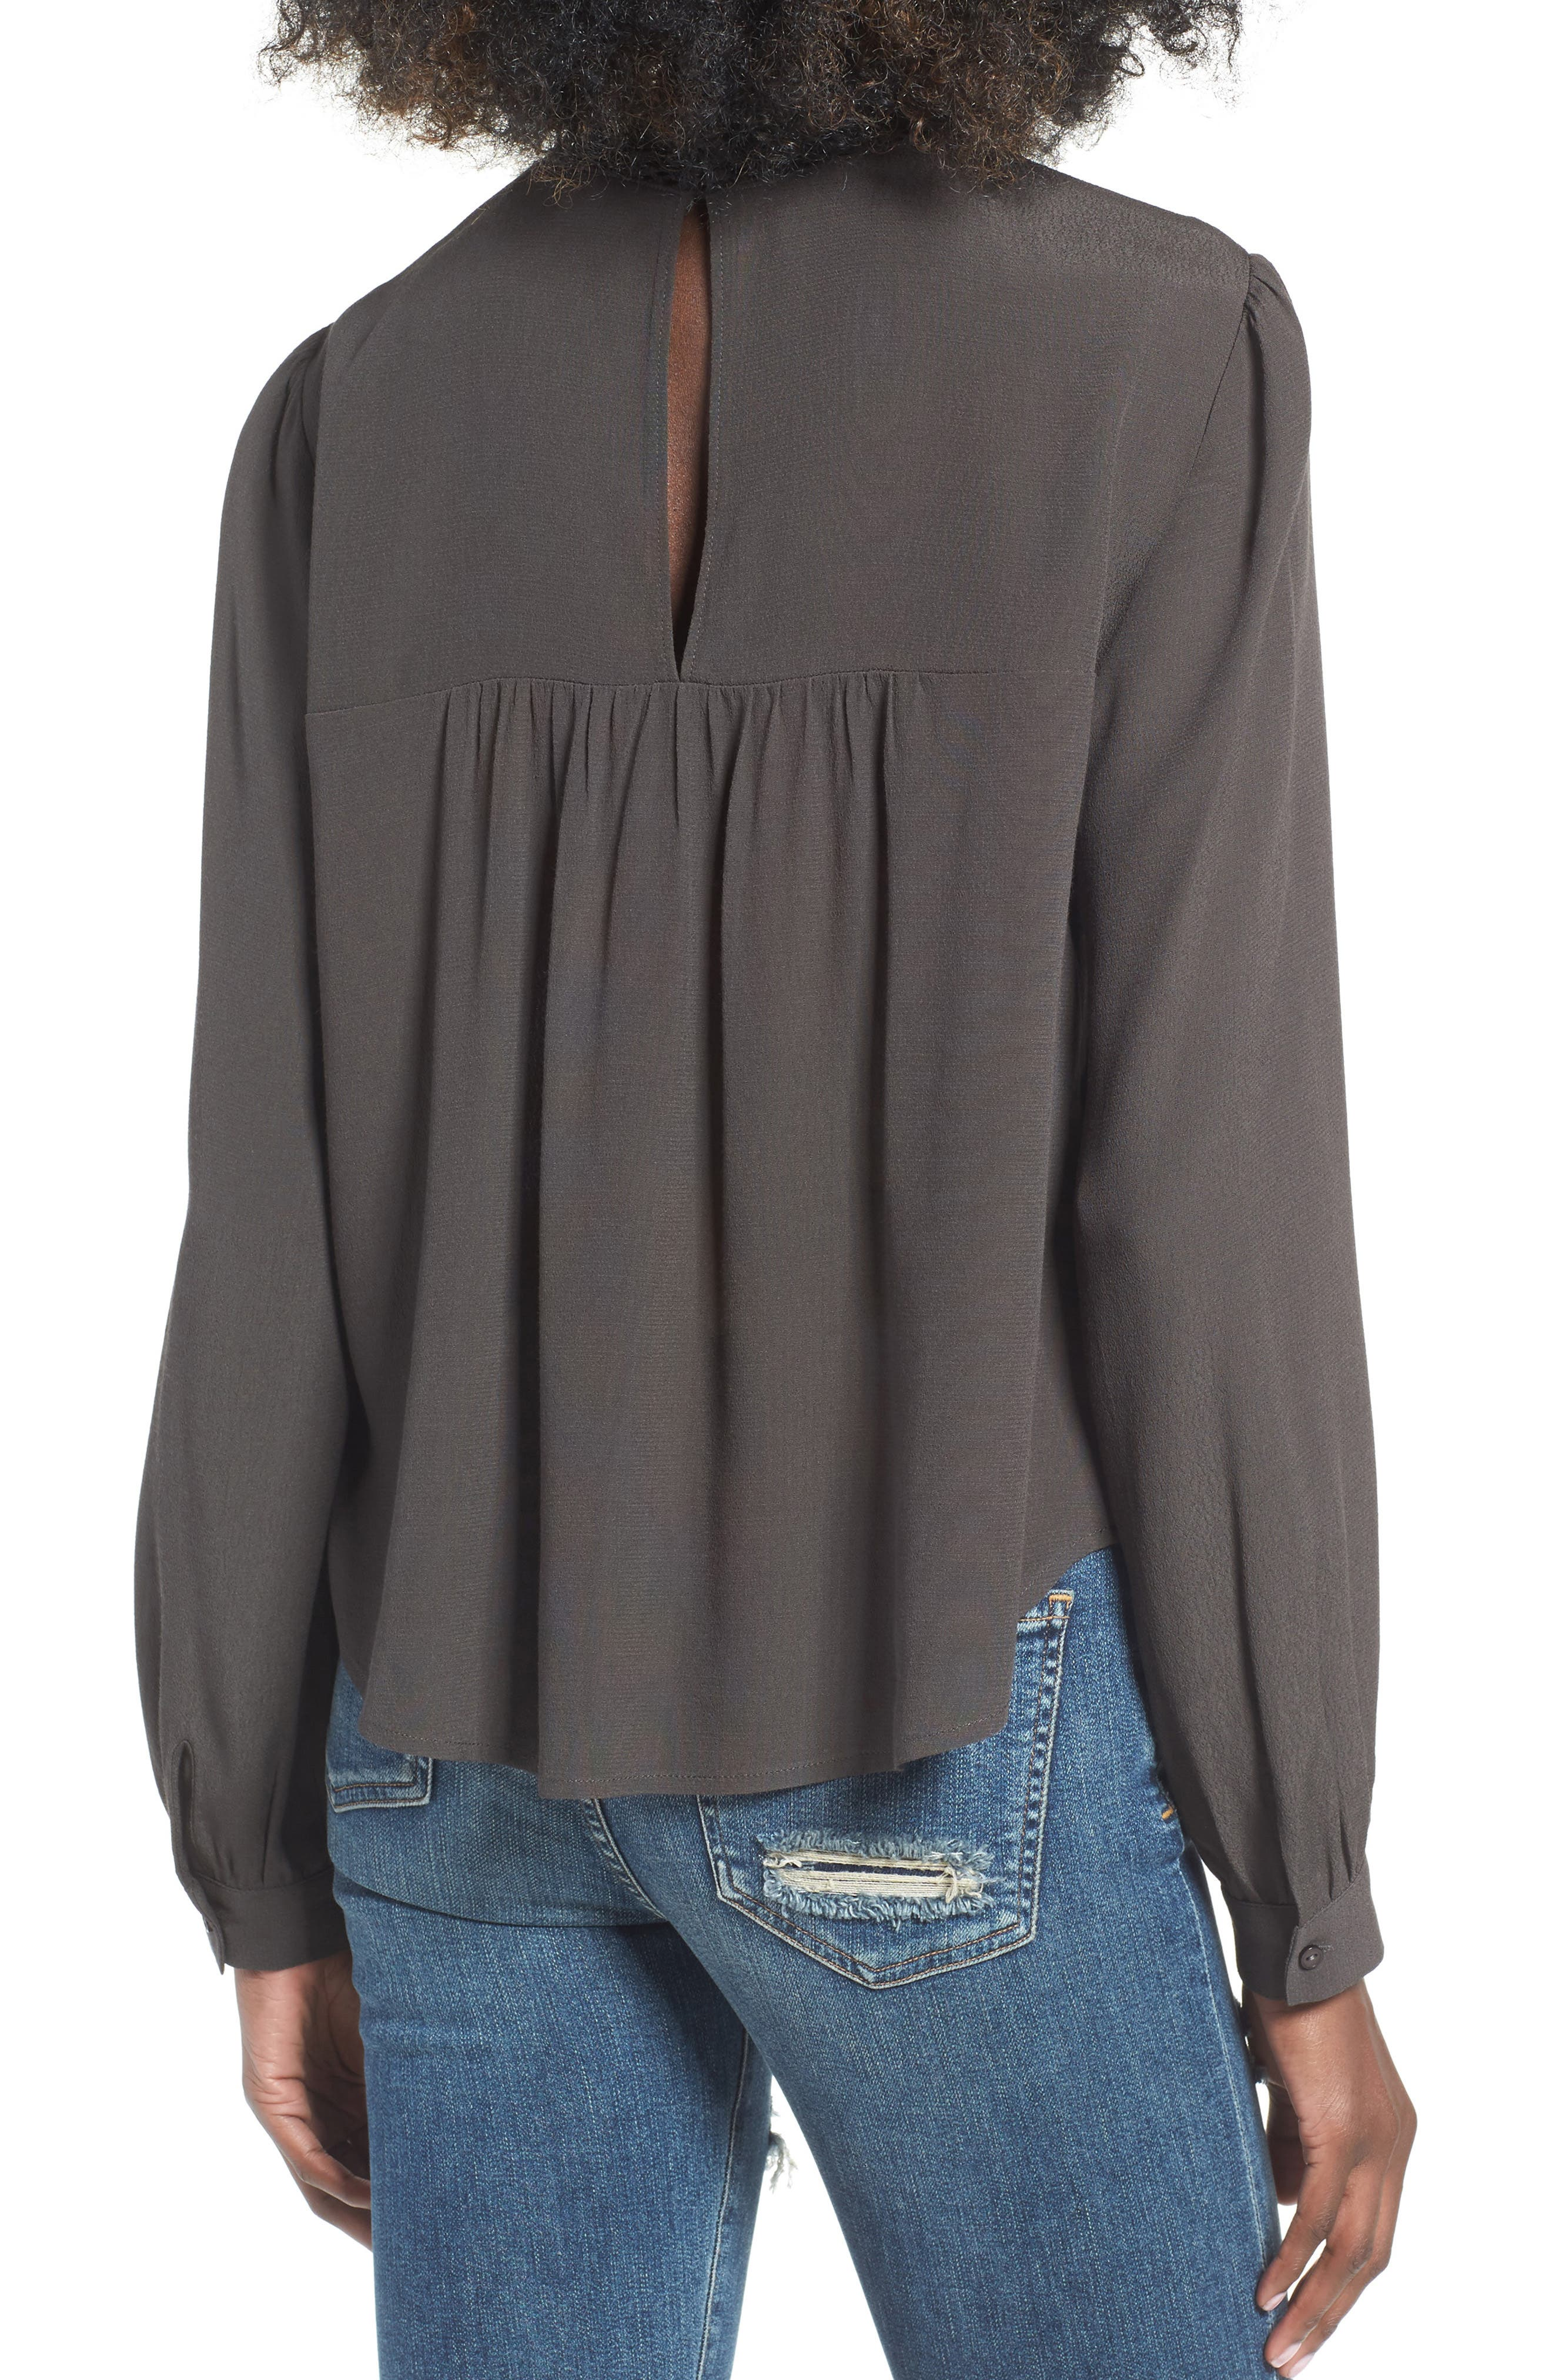 ASTR Embroidered Blouse,                             Alternate thumbnail 2, color,                             020